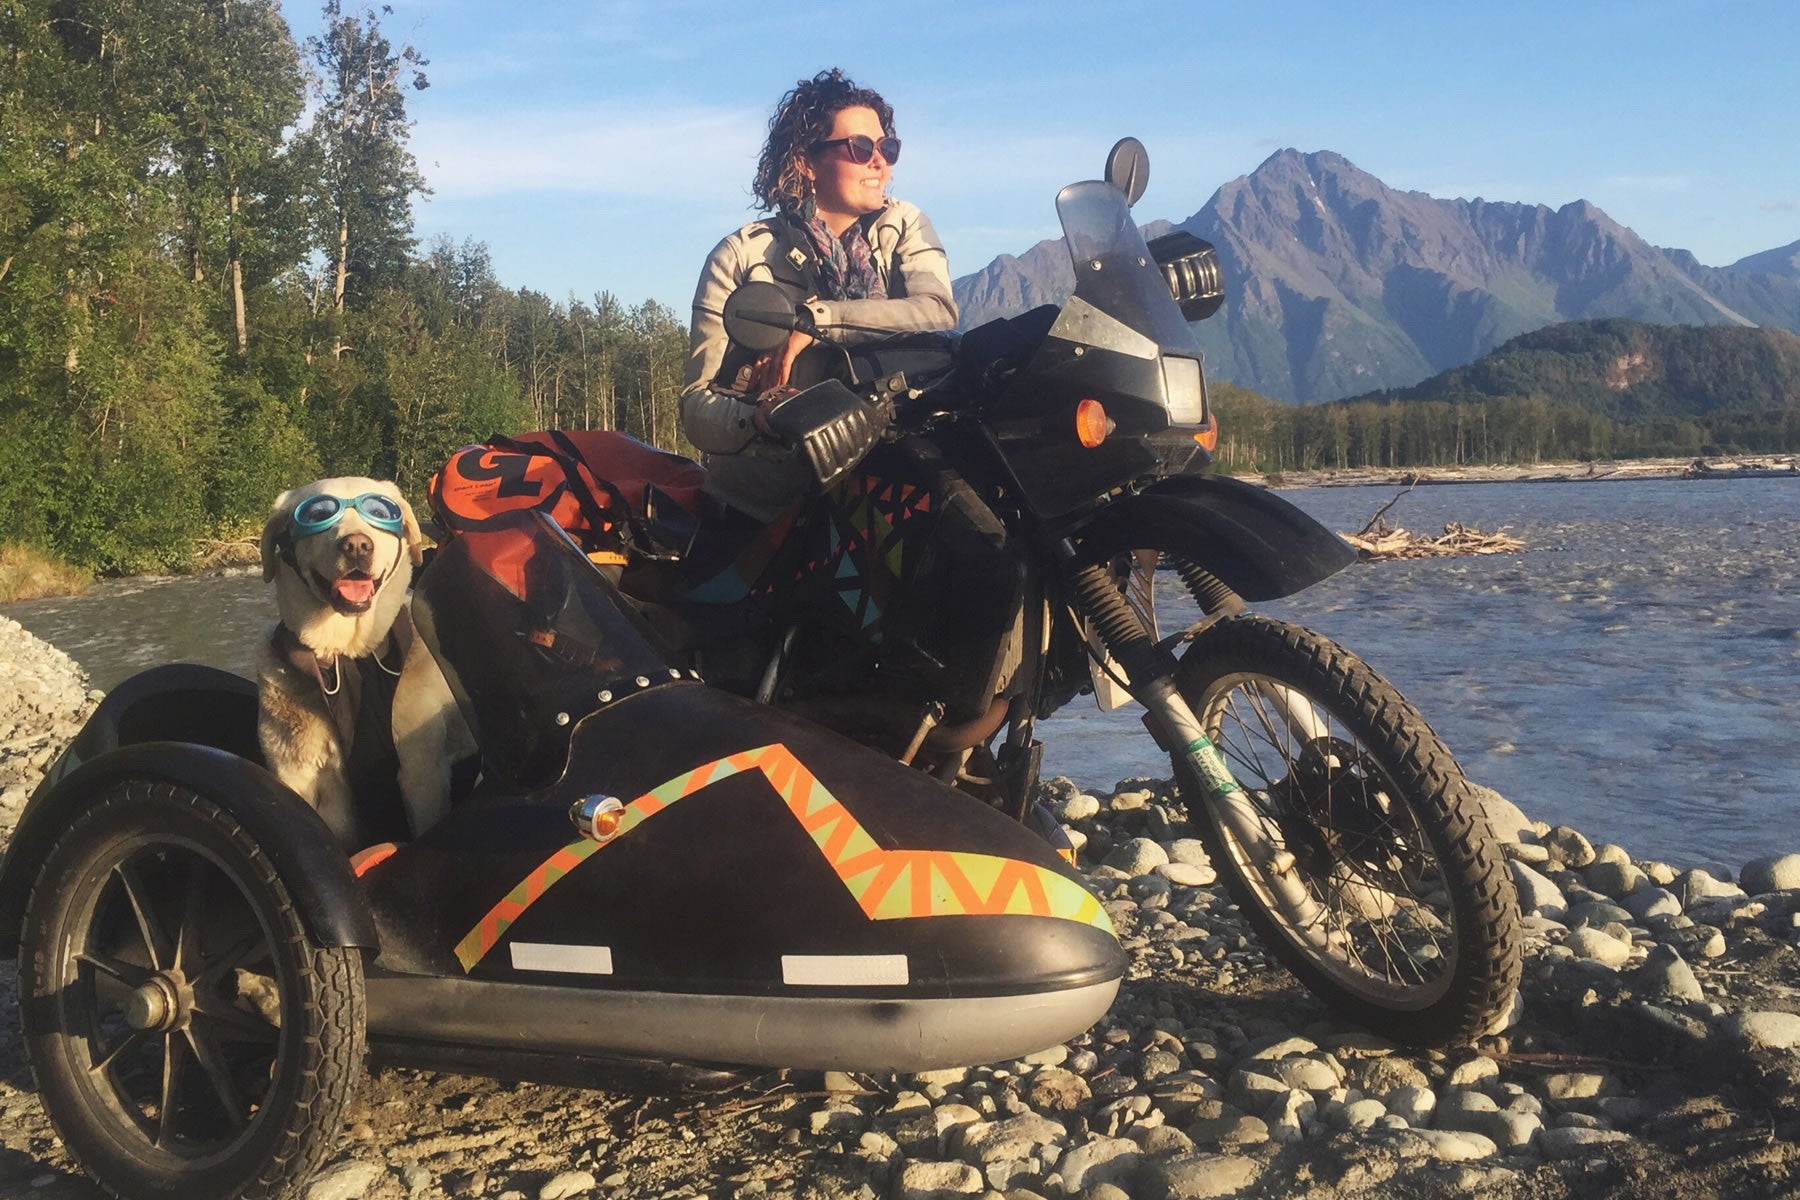 Baylor in doggles and load up harness in sidecar of Mallory's motorcycle in the mountains..